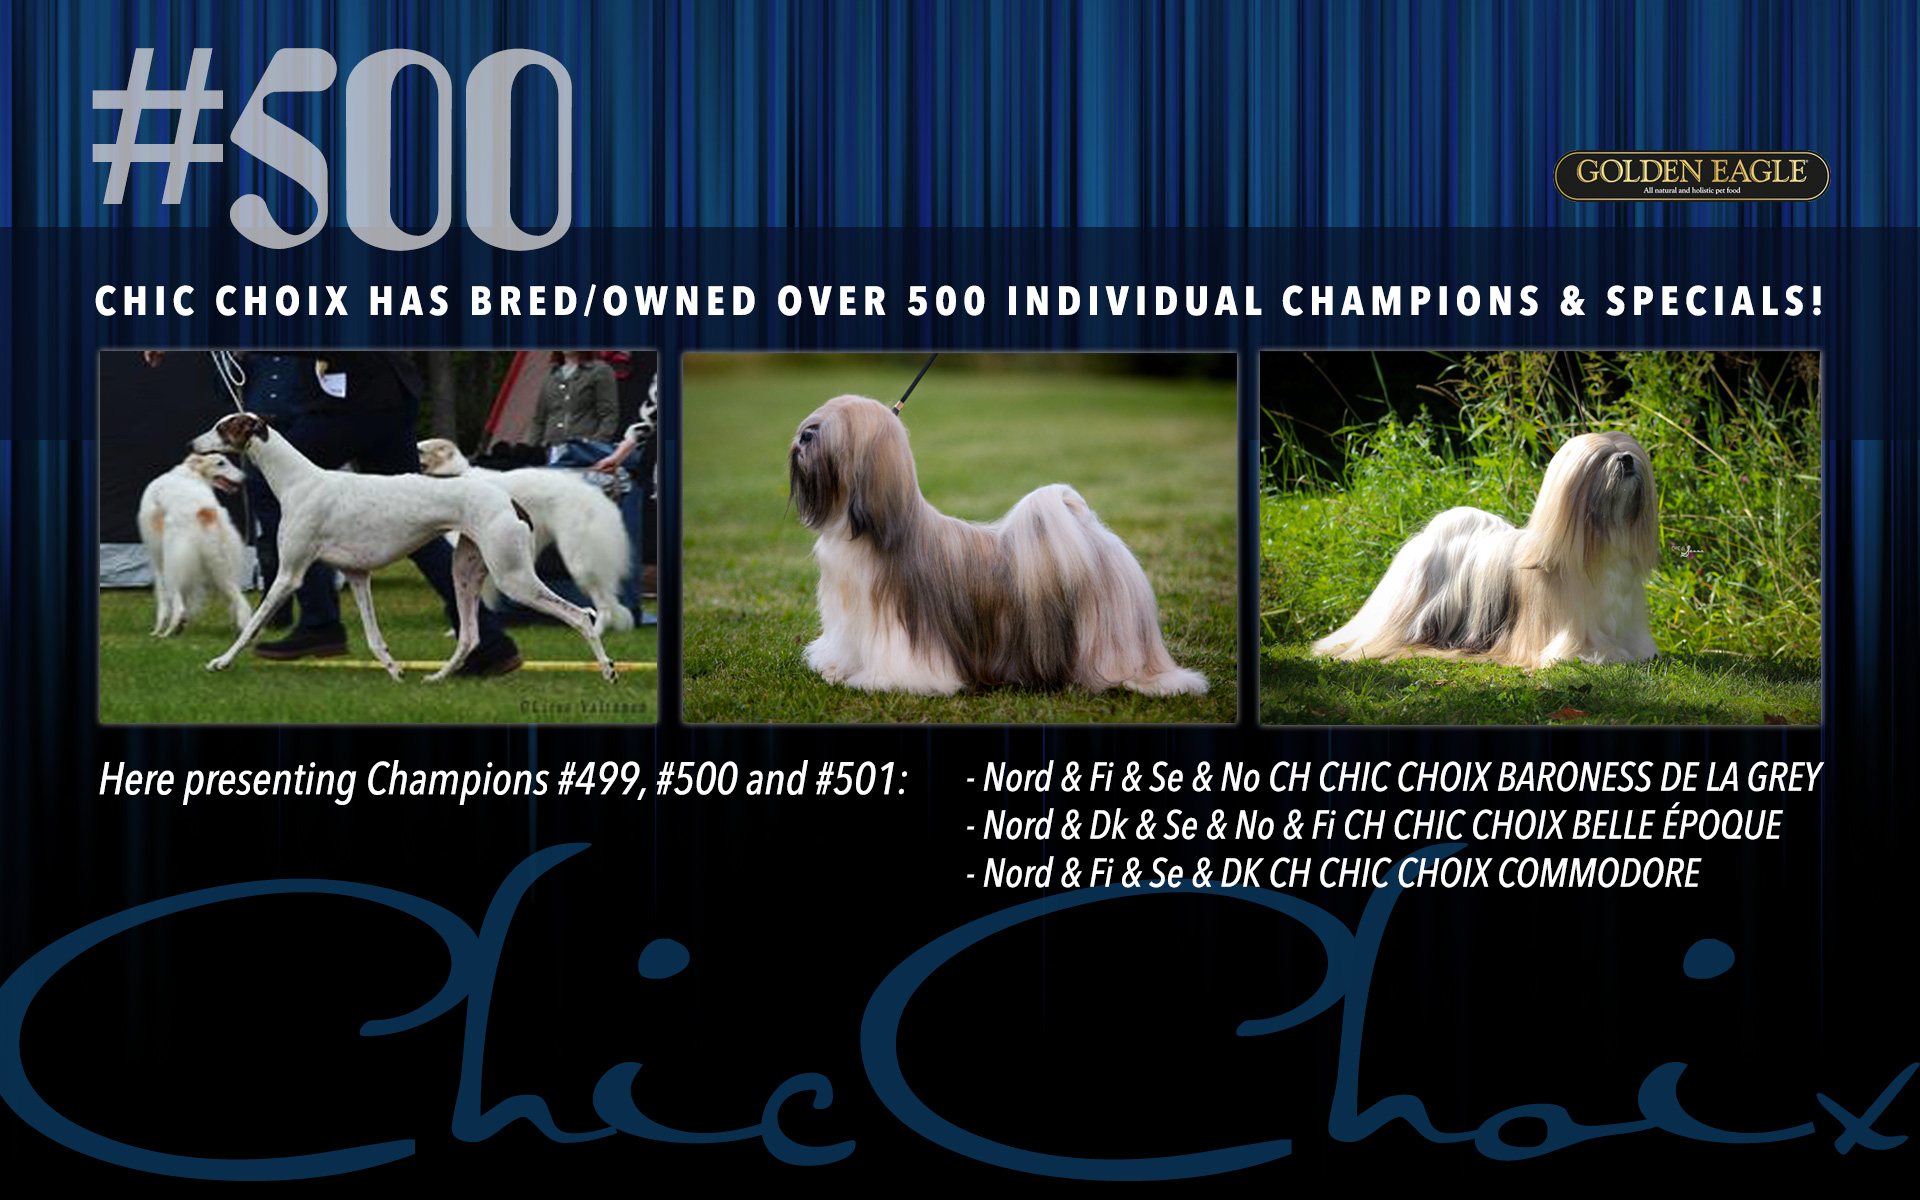 500 Champions and Specials!